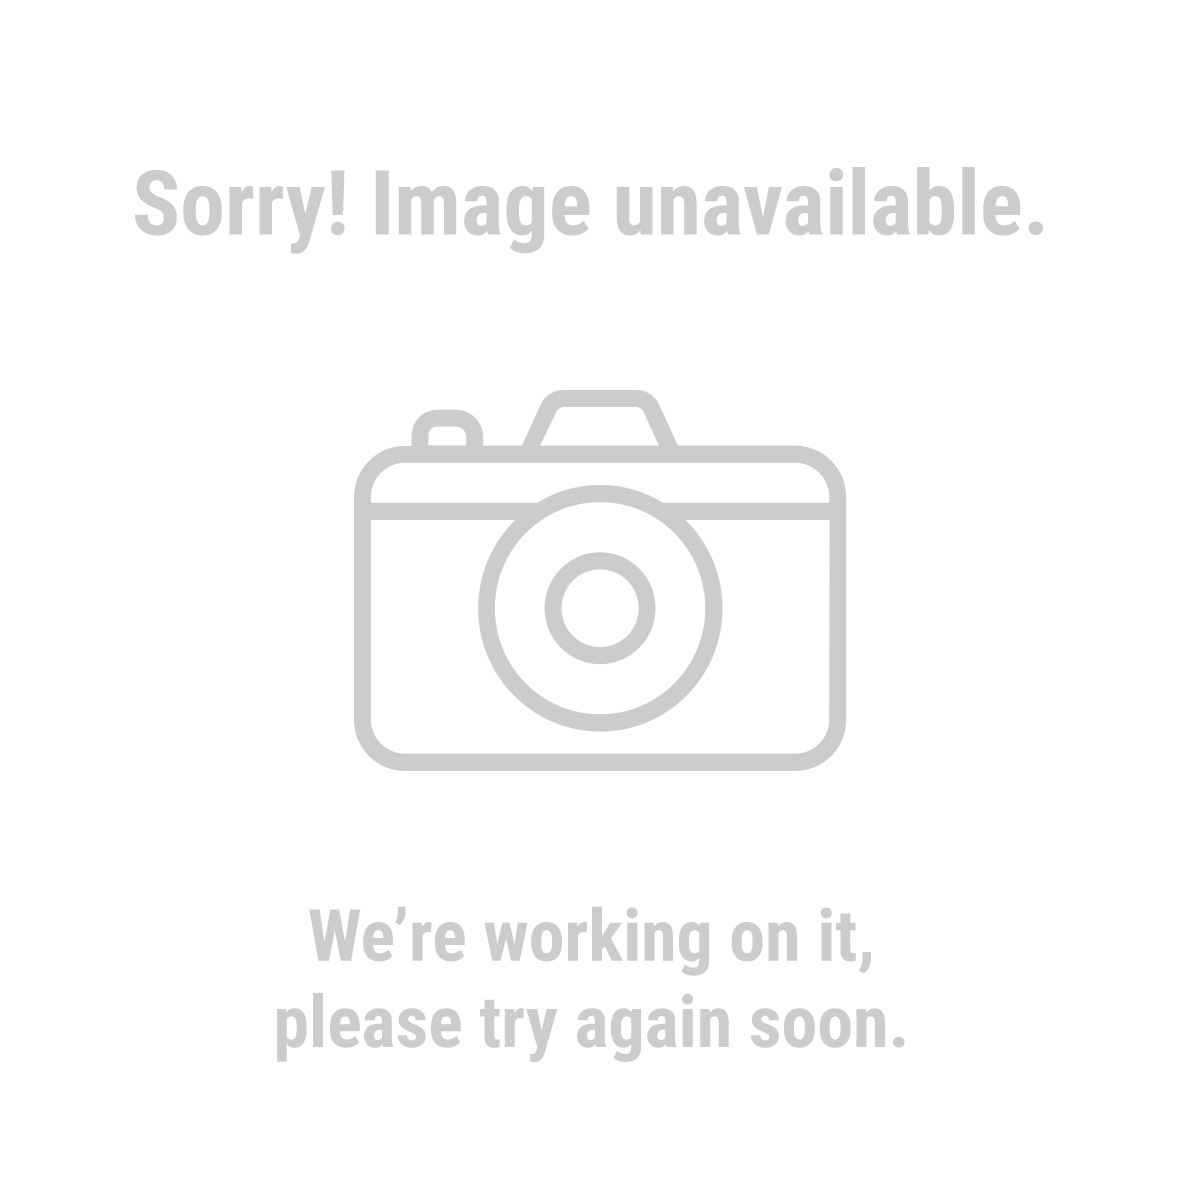 Storm Cat 60338 63cc, 900 Watts Max/800 Watts Rated Portable Generator